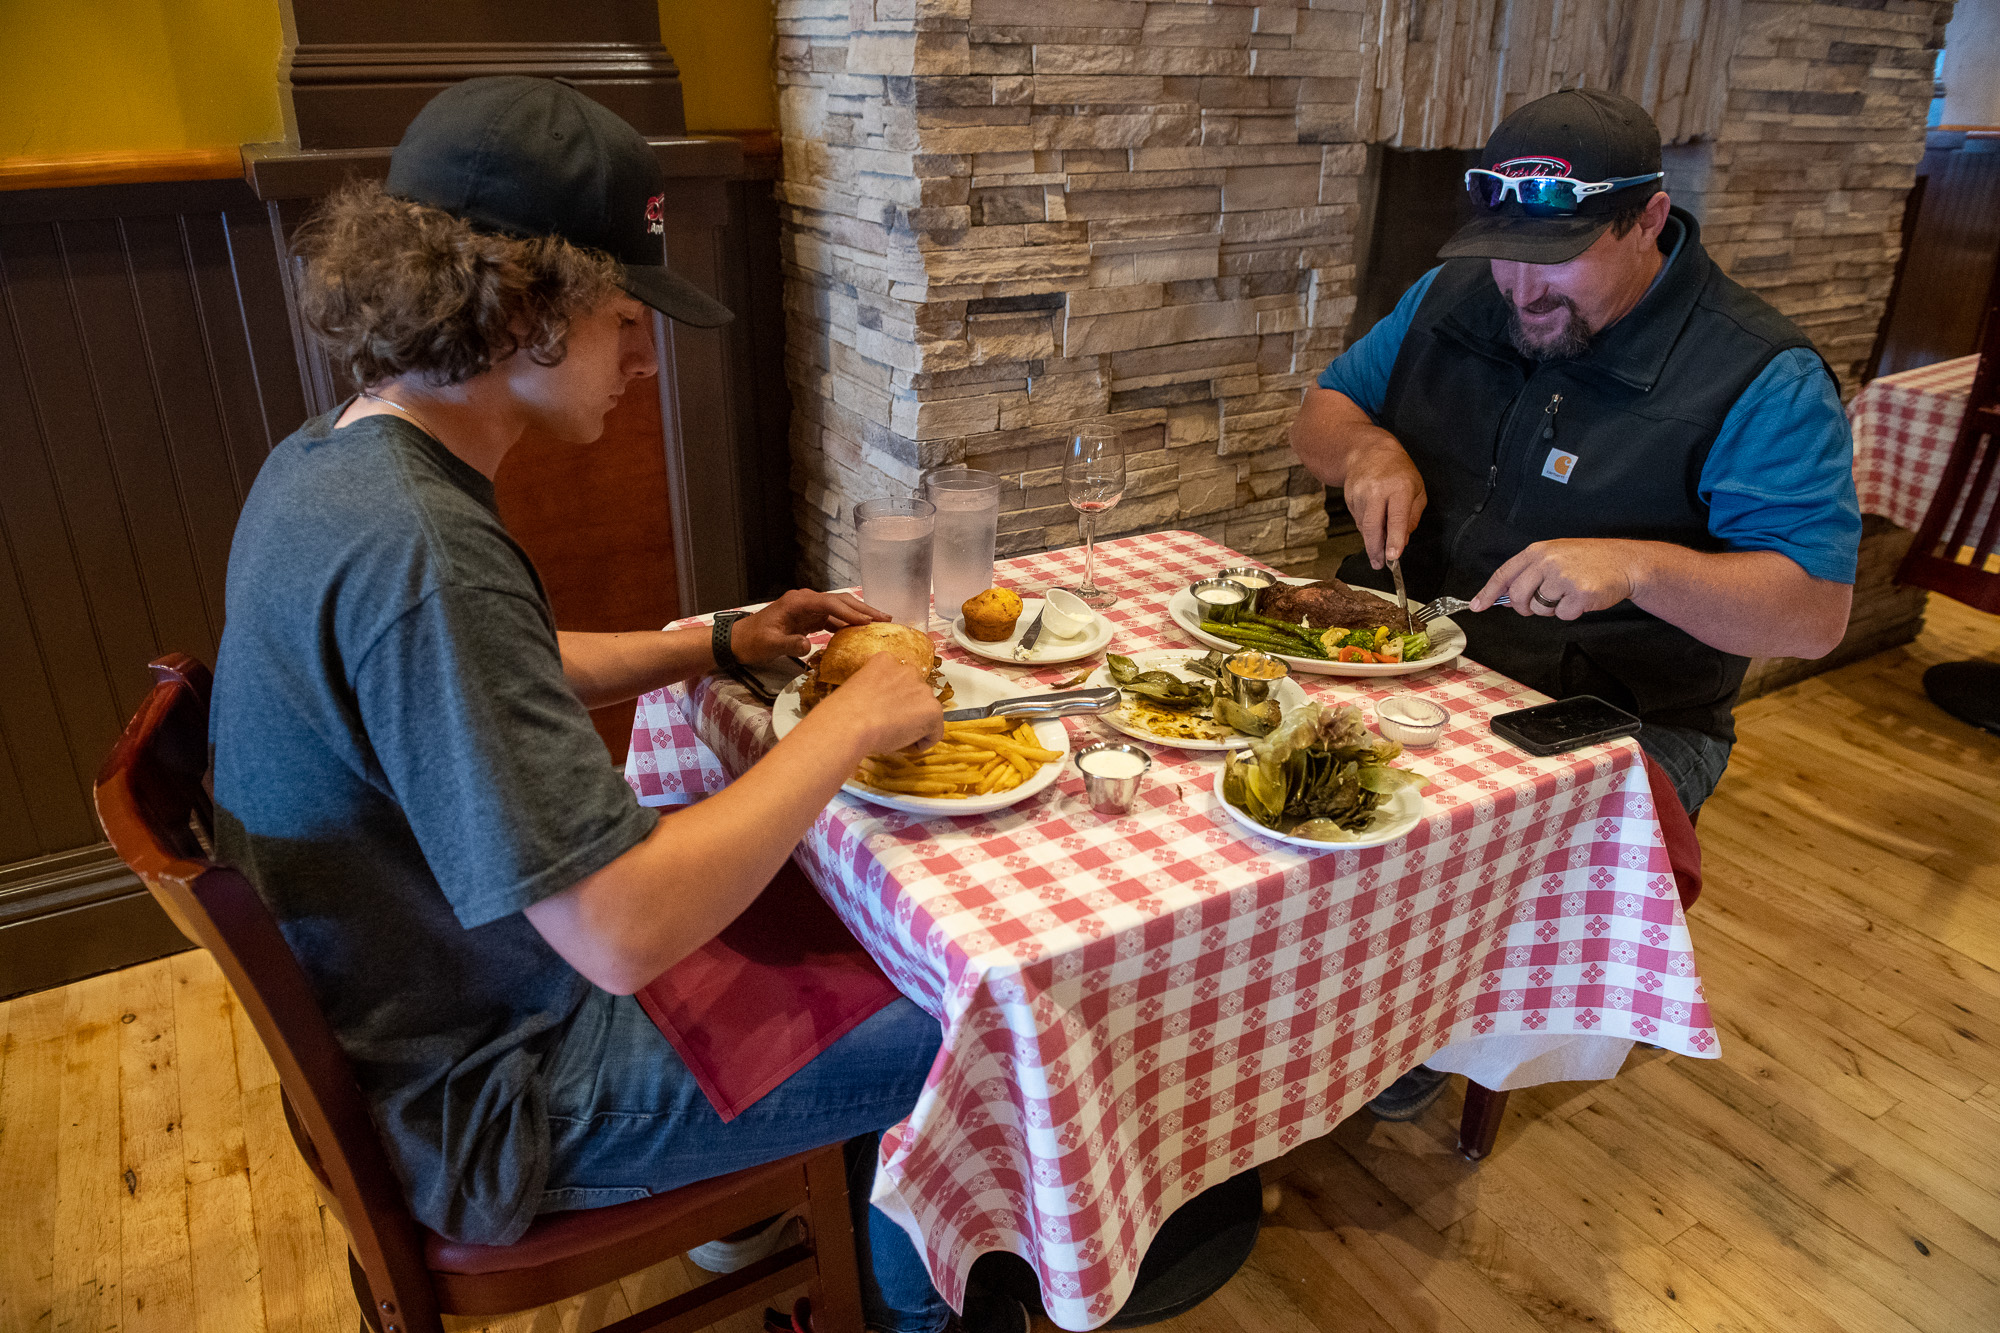 Rick Poletski and his son Tyler talk with Shamus T Bones owner Chris Barry on the first night of dine in service in Humboldt County since the shelter in place orders were given.